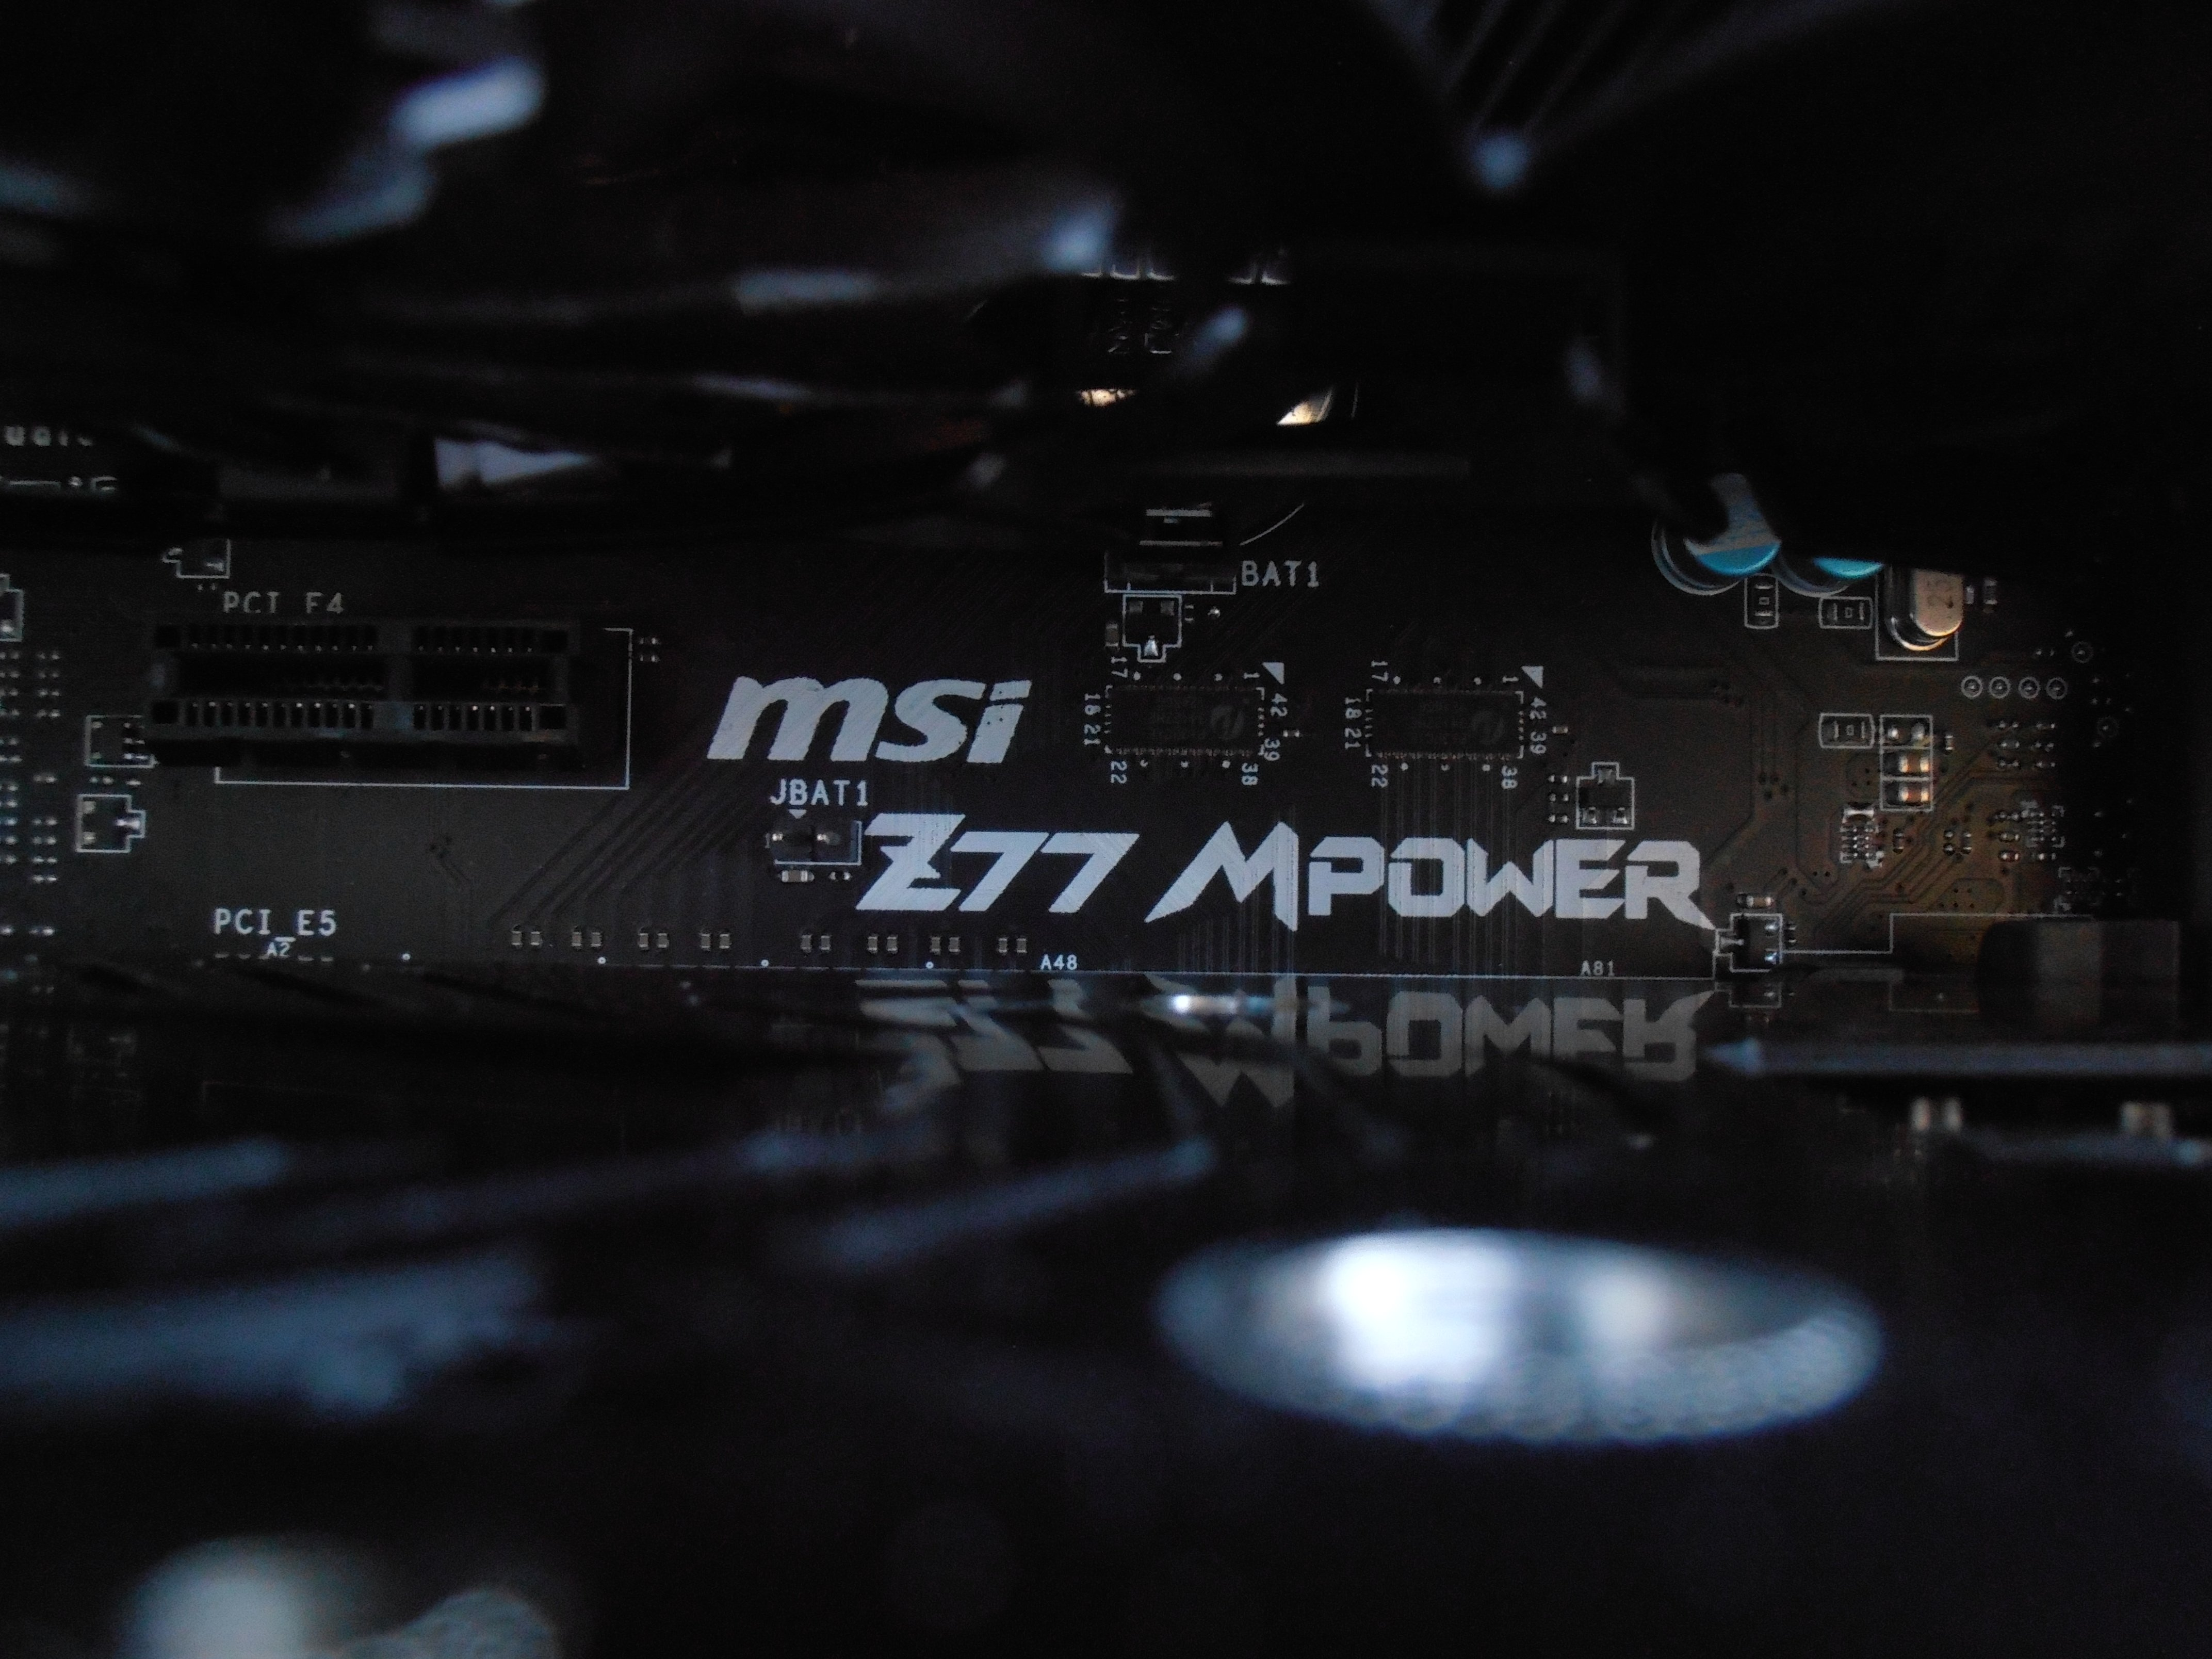 Msi wallpaper computer wallpapers 29111 html code - 0 Html Code Msi Z77 Mpower Motherboard 4k Wallpaper Background